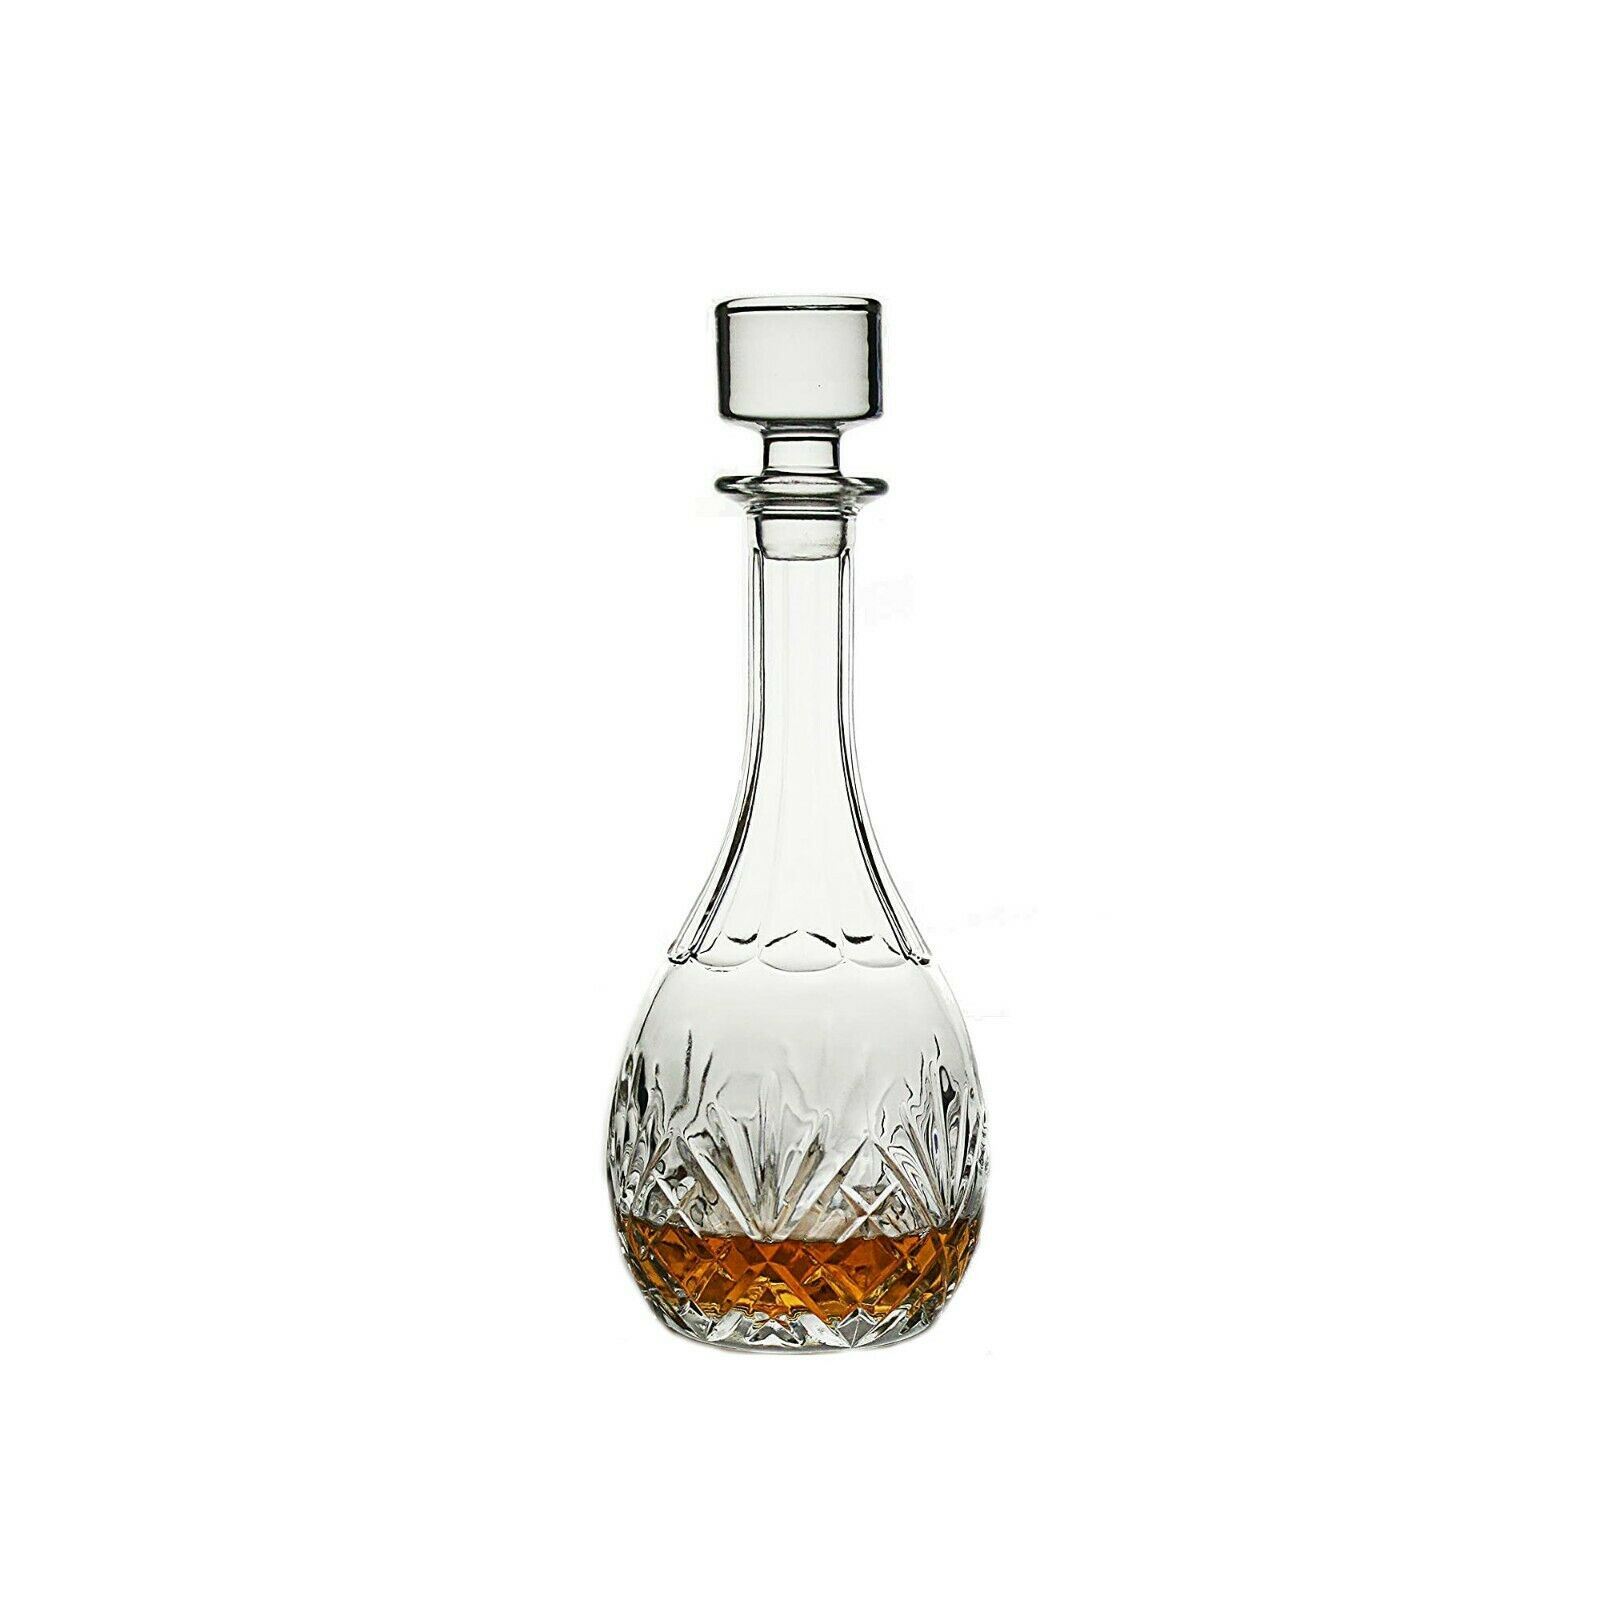 Finest Quality Thick Hand Blown Spirit Decanter Wine Carafe Lead Free 34 Fl For Sale Online Ebay